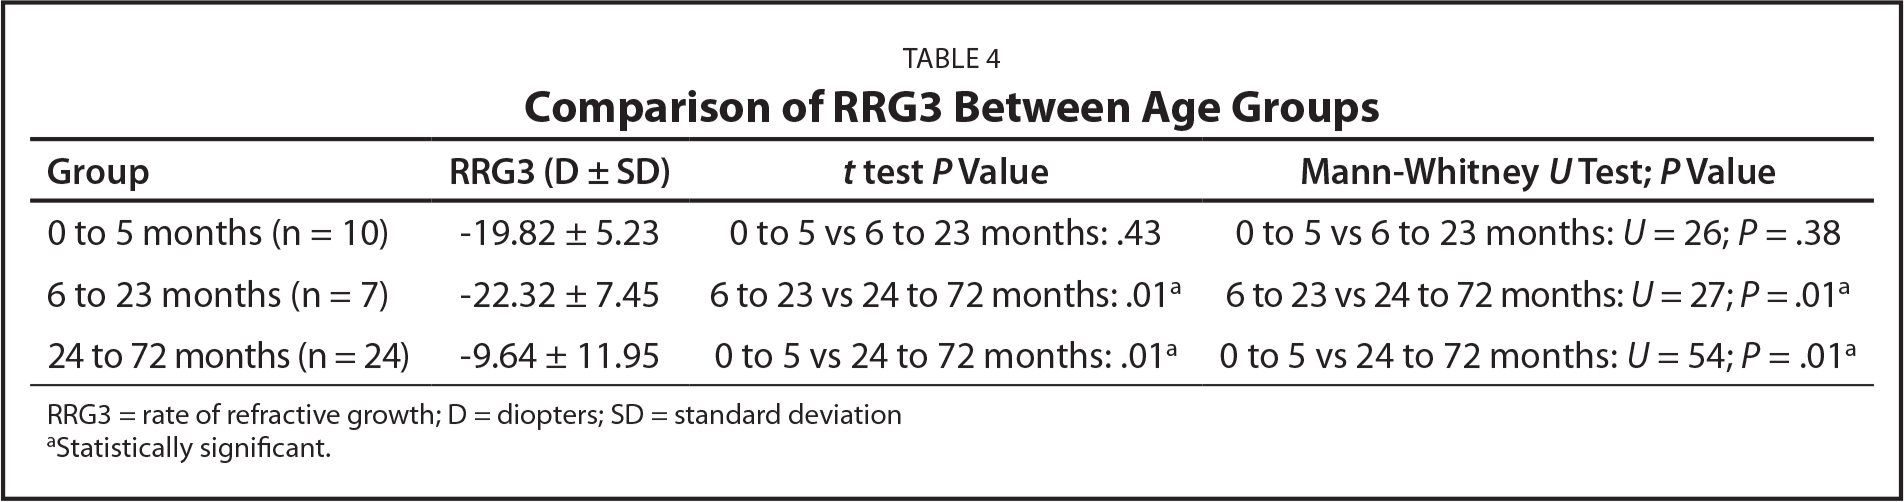 Comparison of RRG3 Between Age Groups